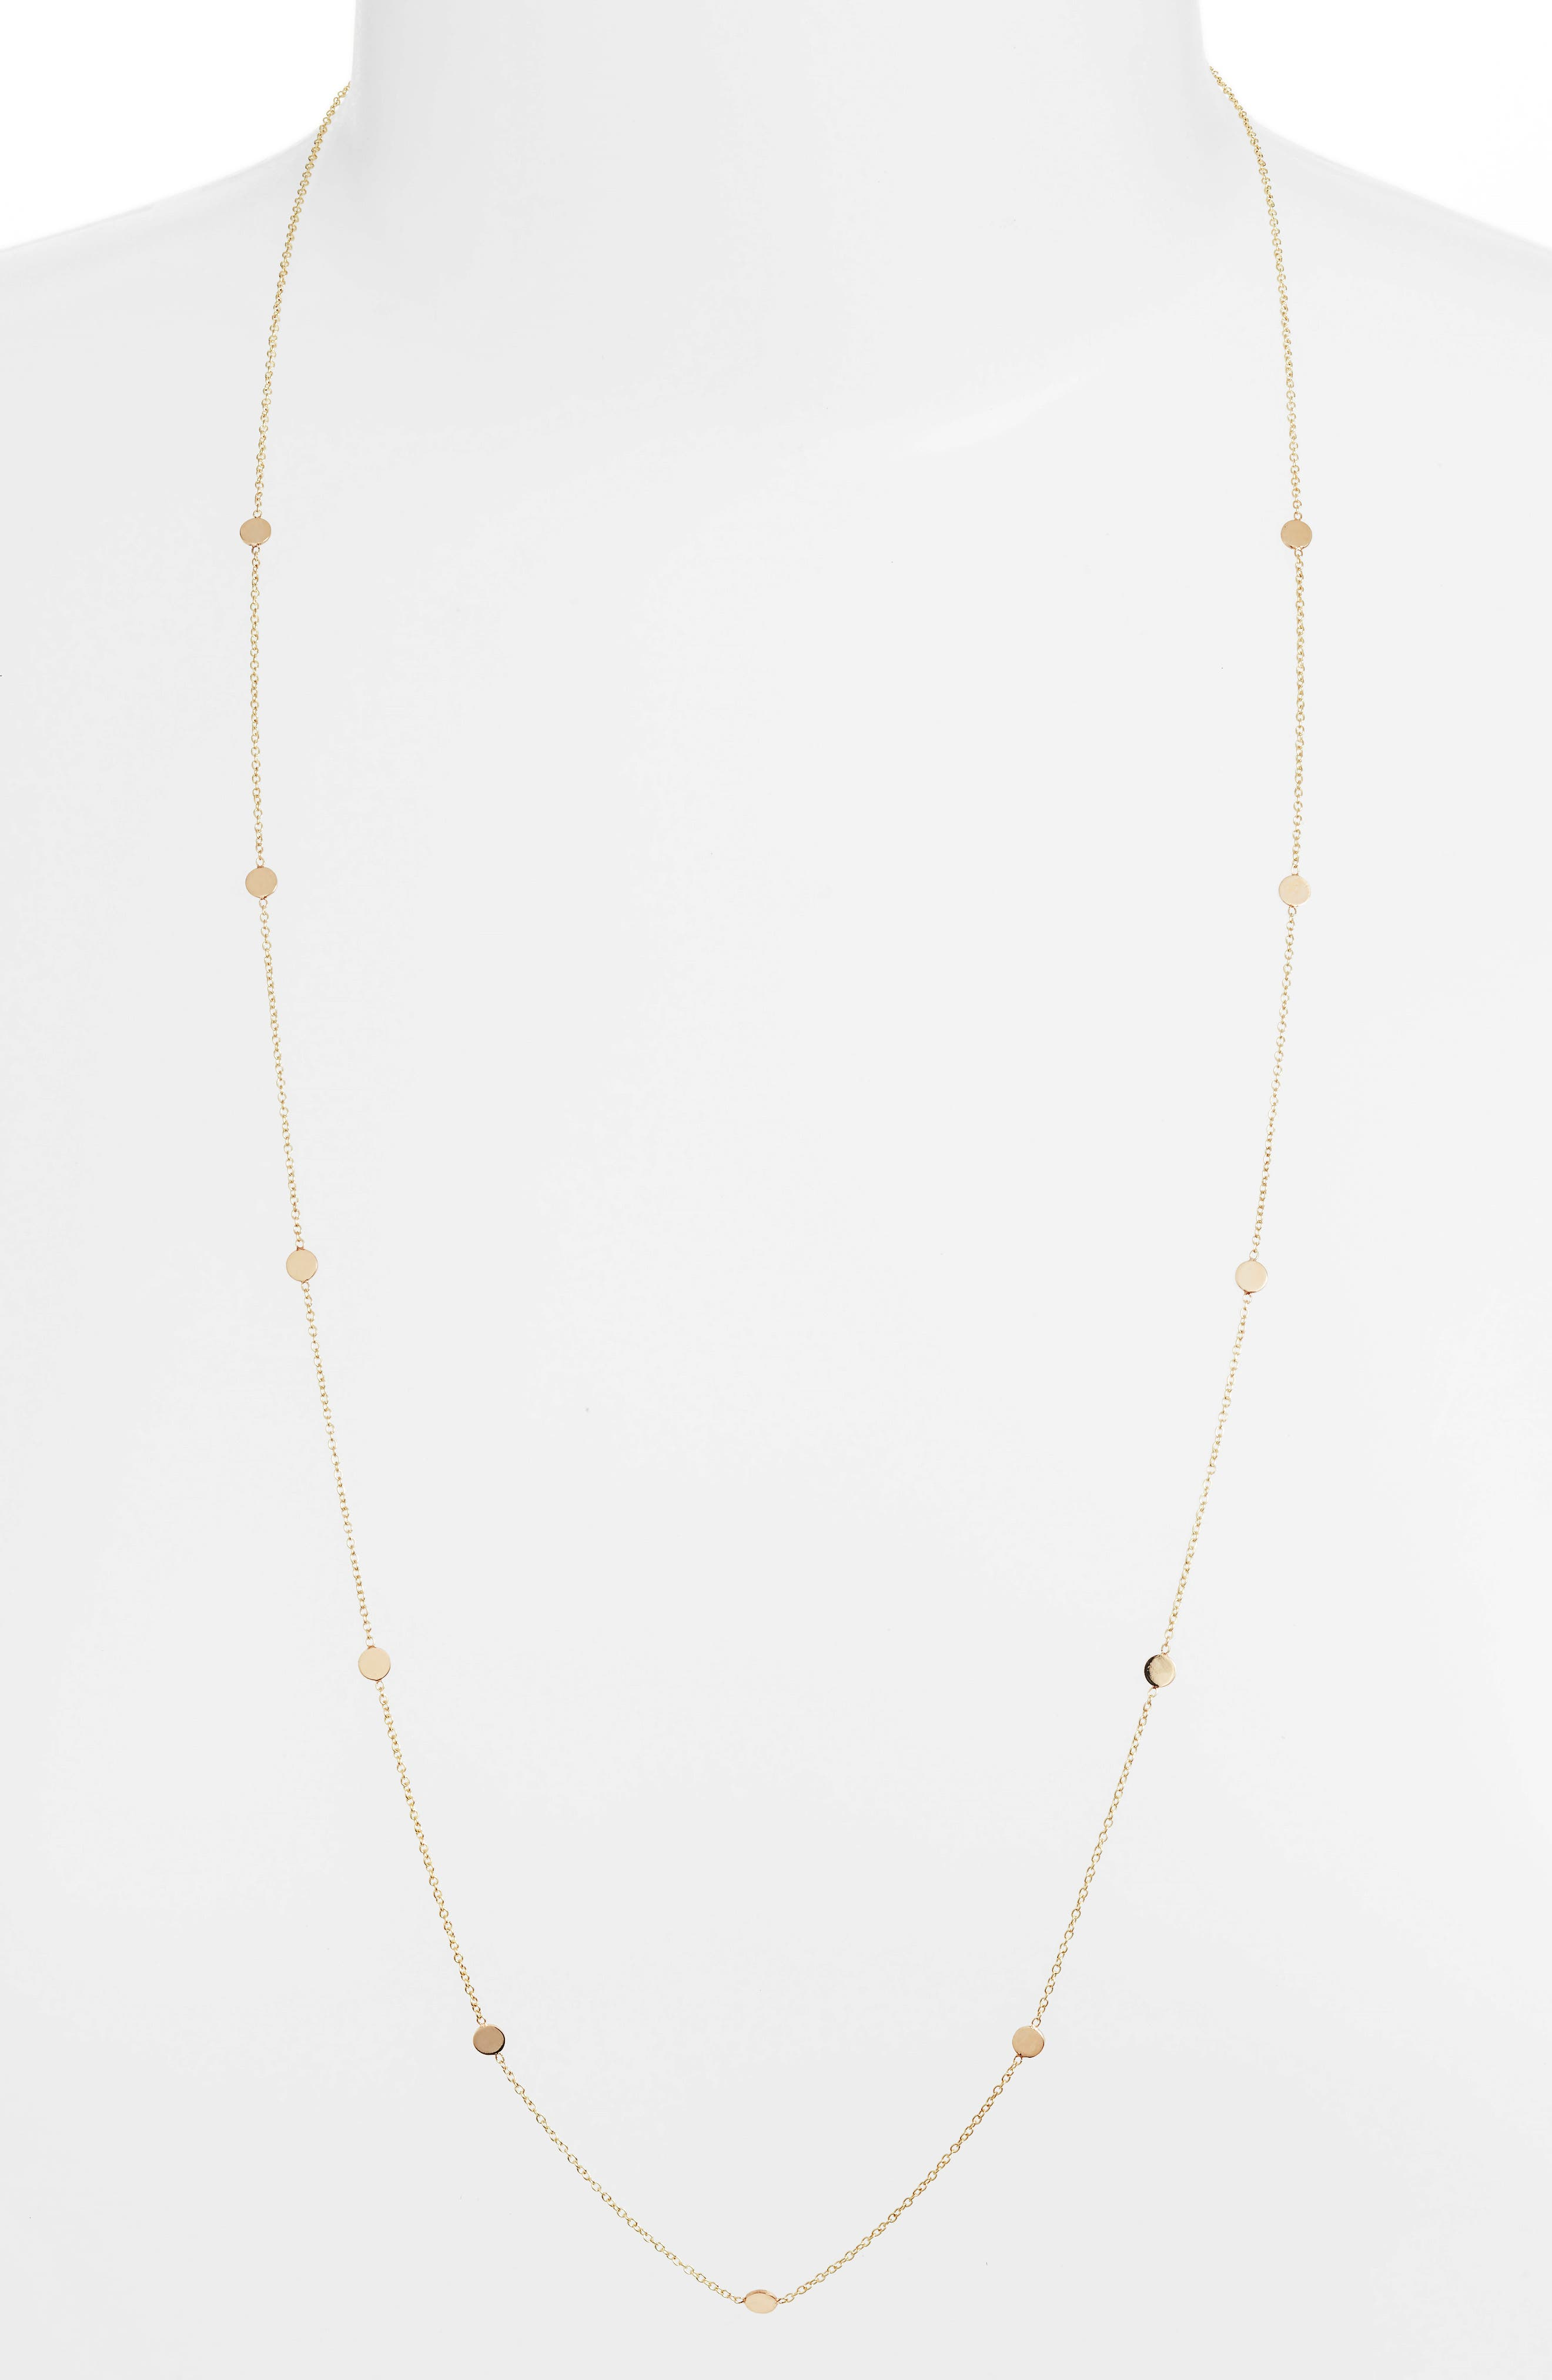 Itty Bitty Round Disc Station Necklace,                             Main thumbnail 1, color,                             YELLOW GOLD